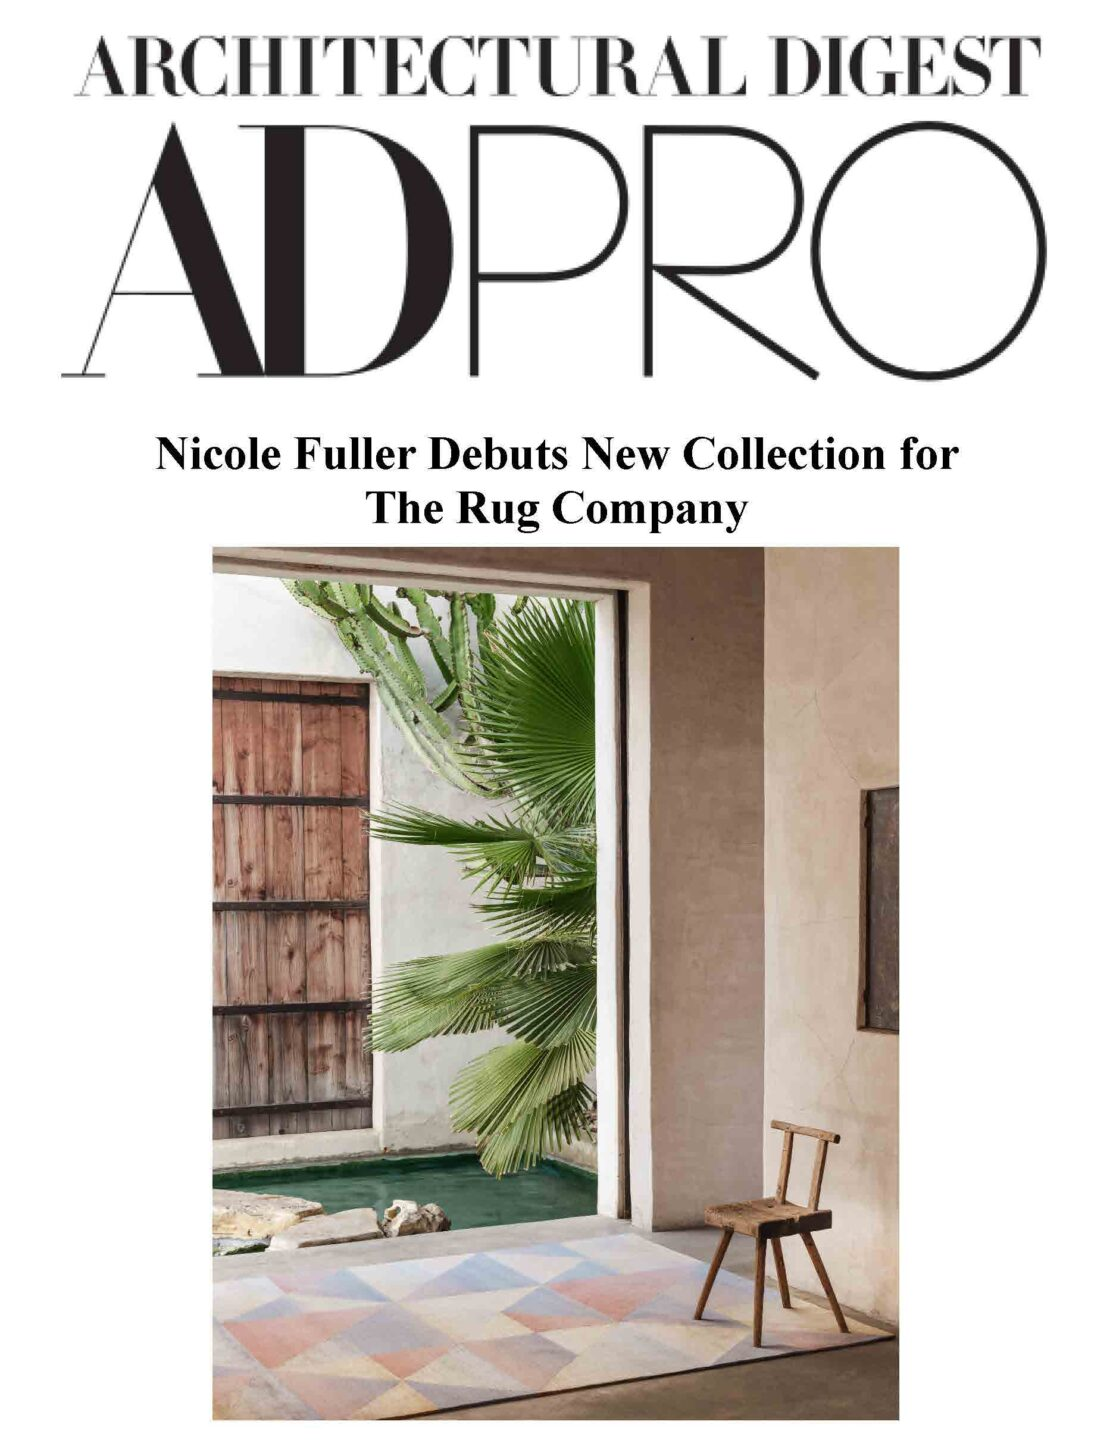 AD PRO THE RUG CO cover